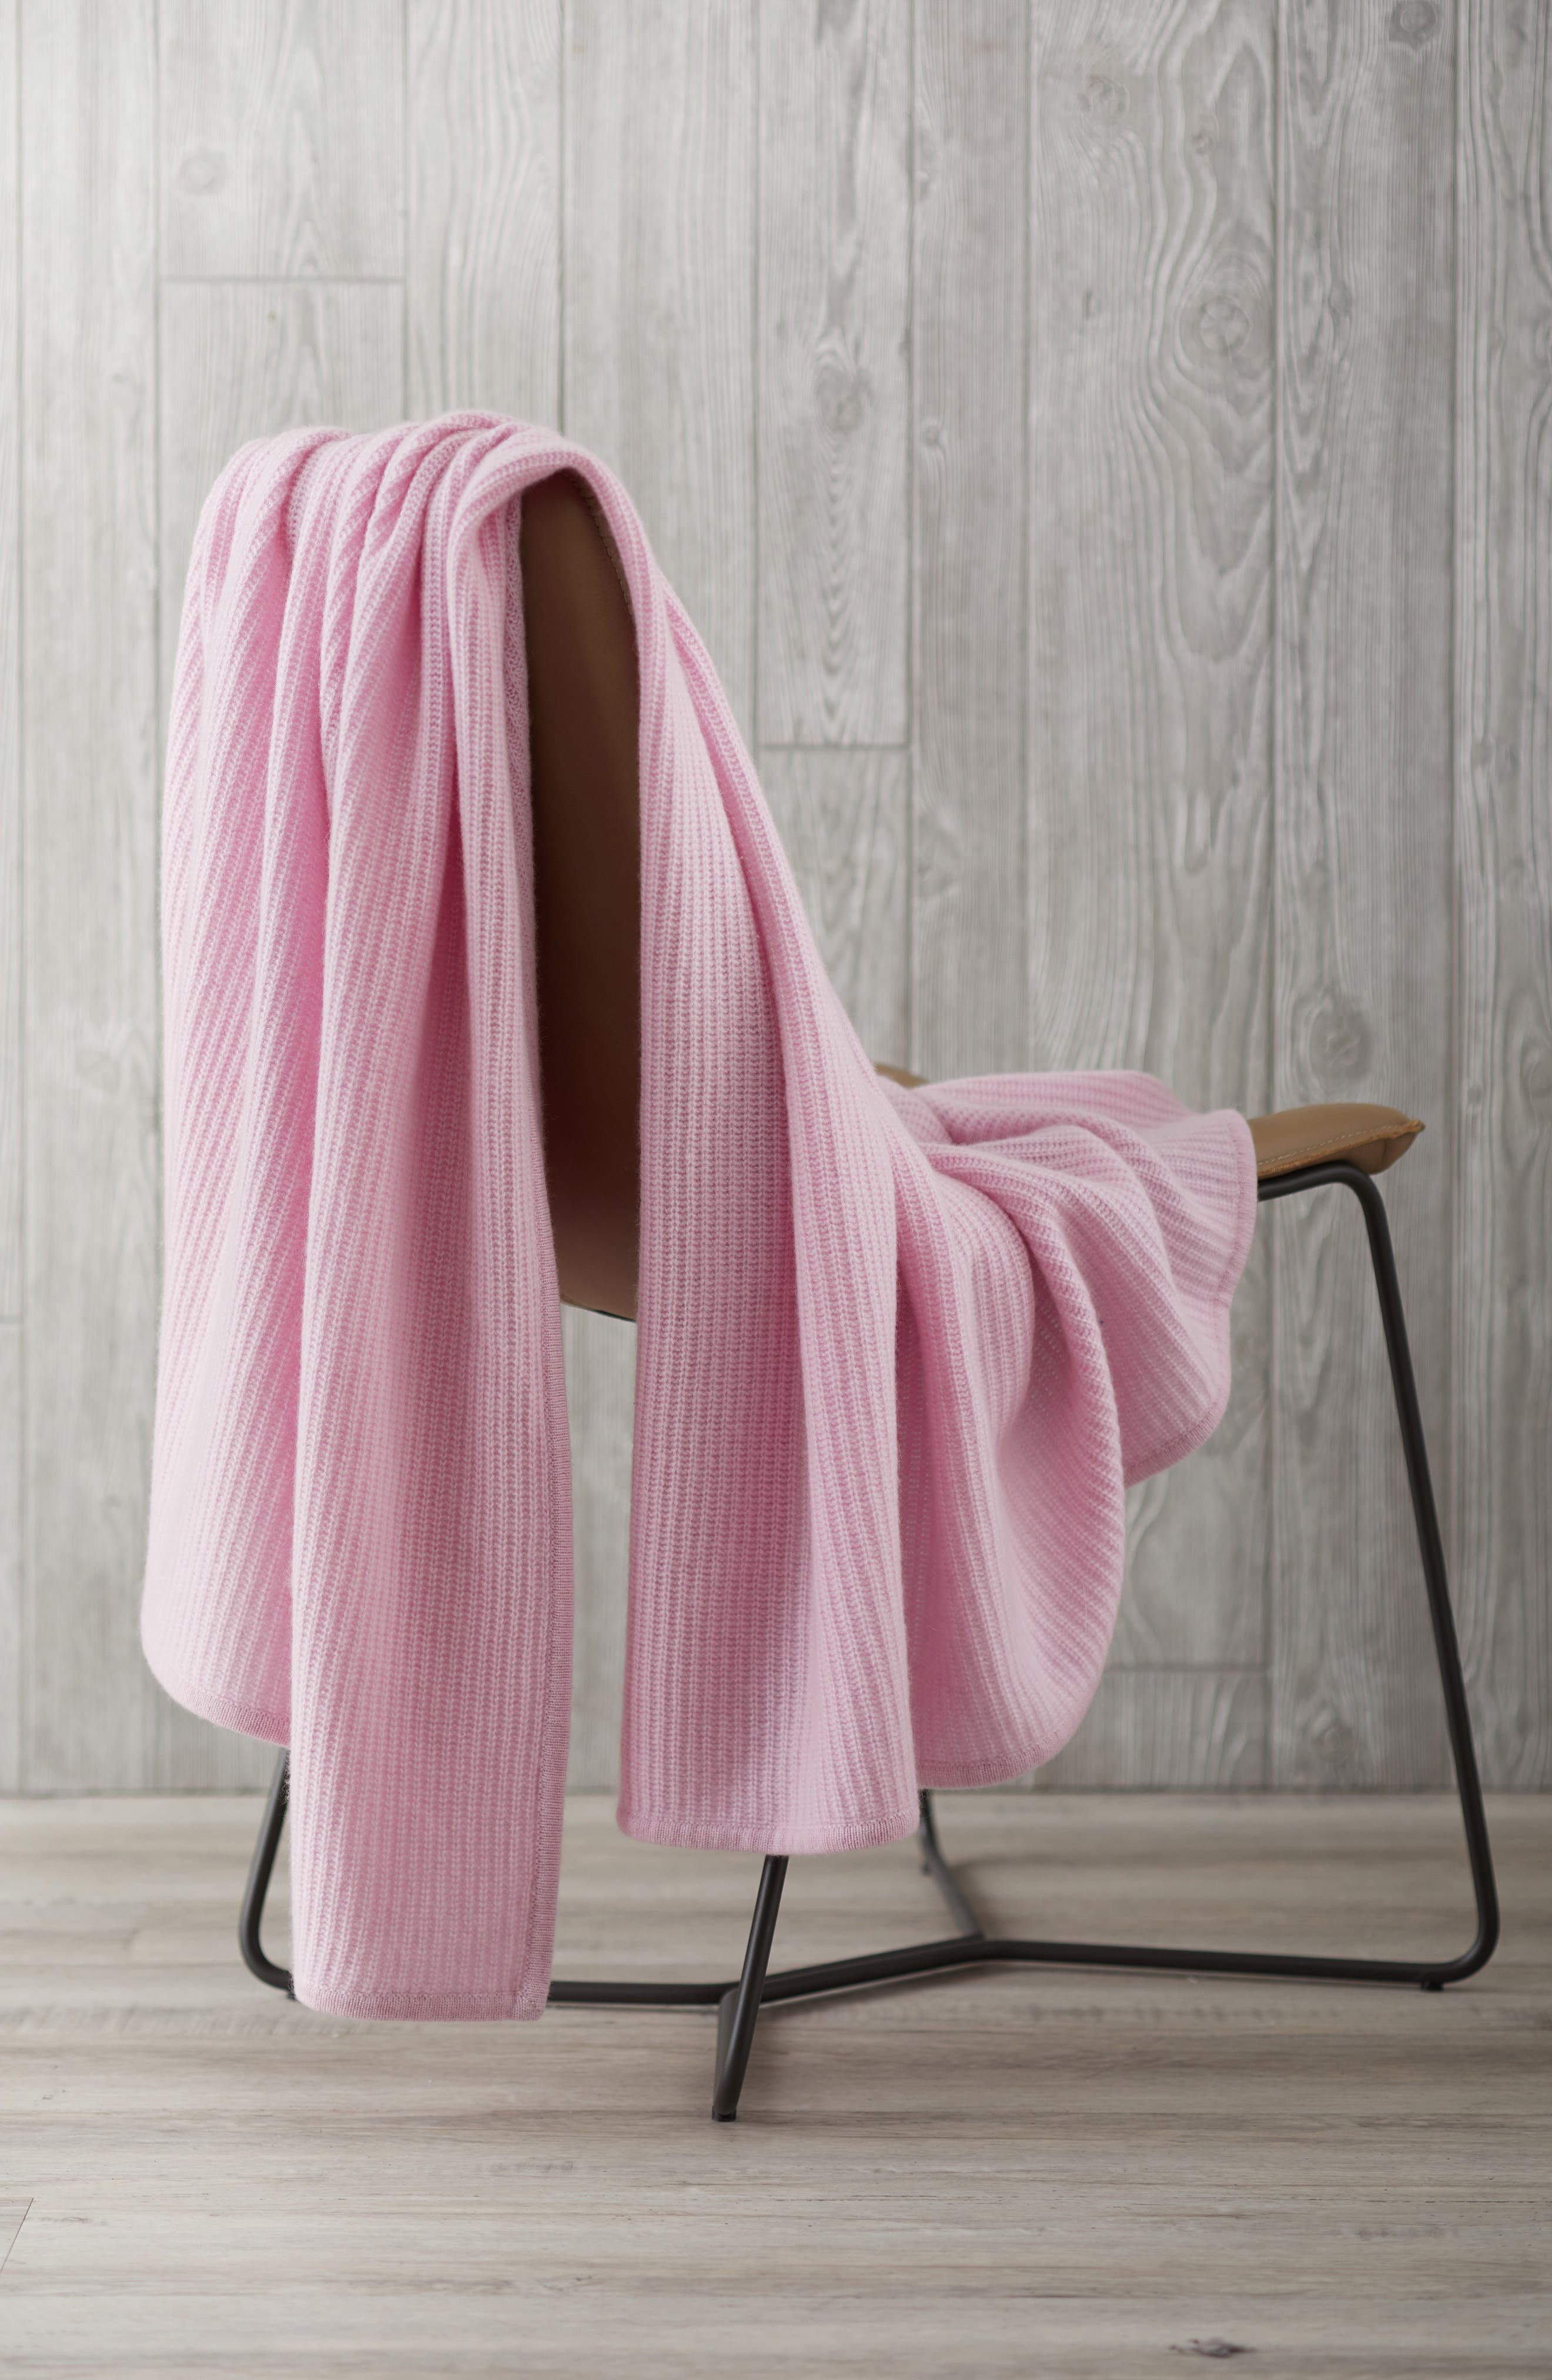 Lattice Cashmere Throw Blanket,                             Alternate thumbnail 23, color,